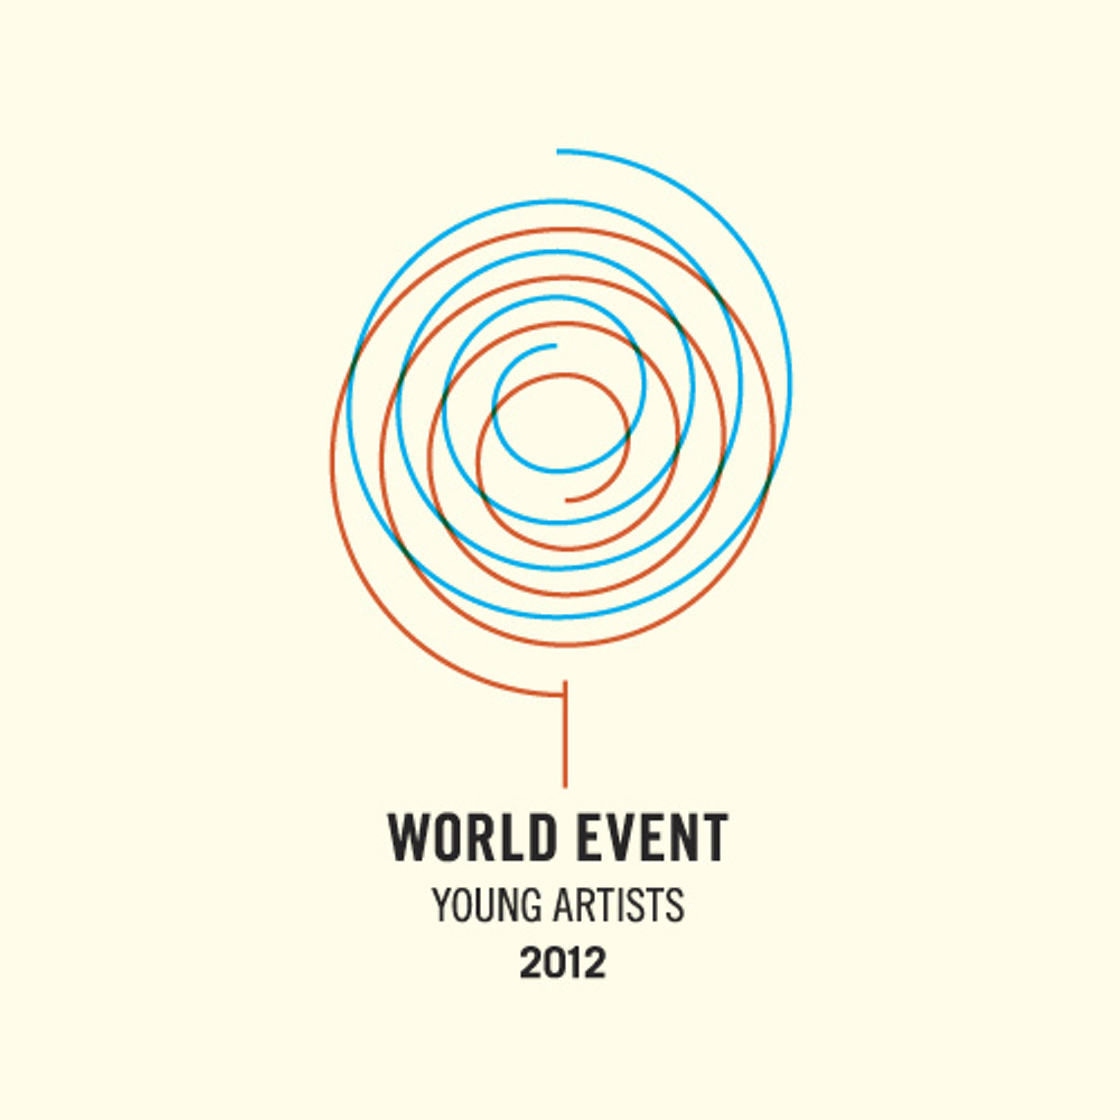 World Event Young Artists